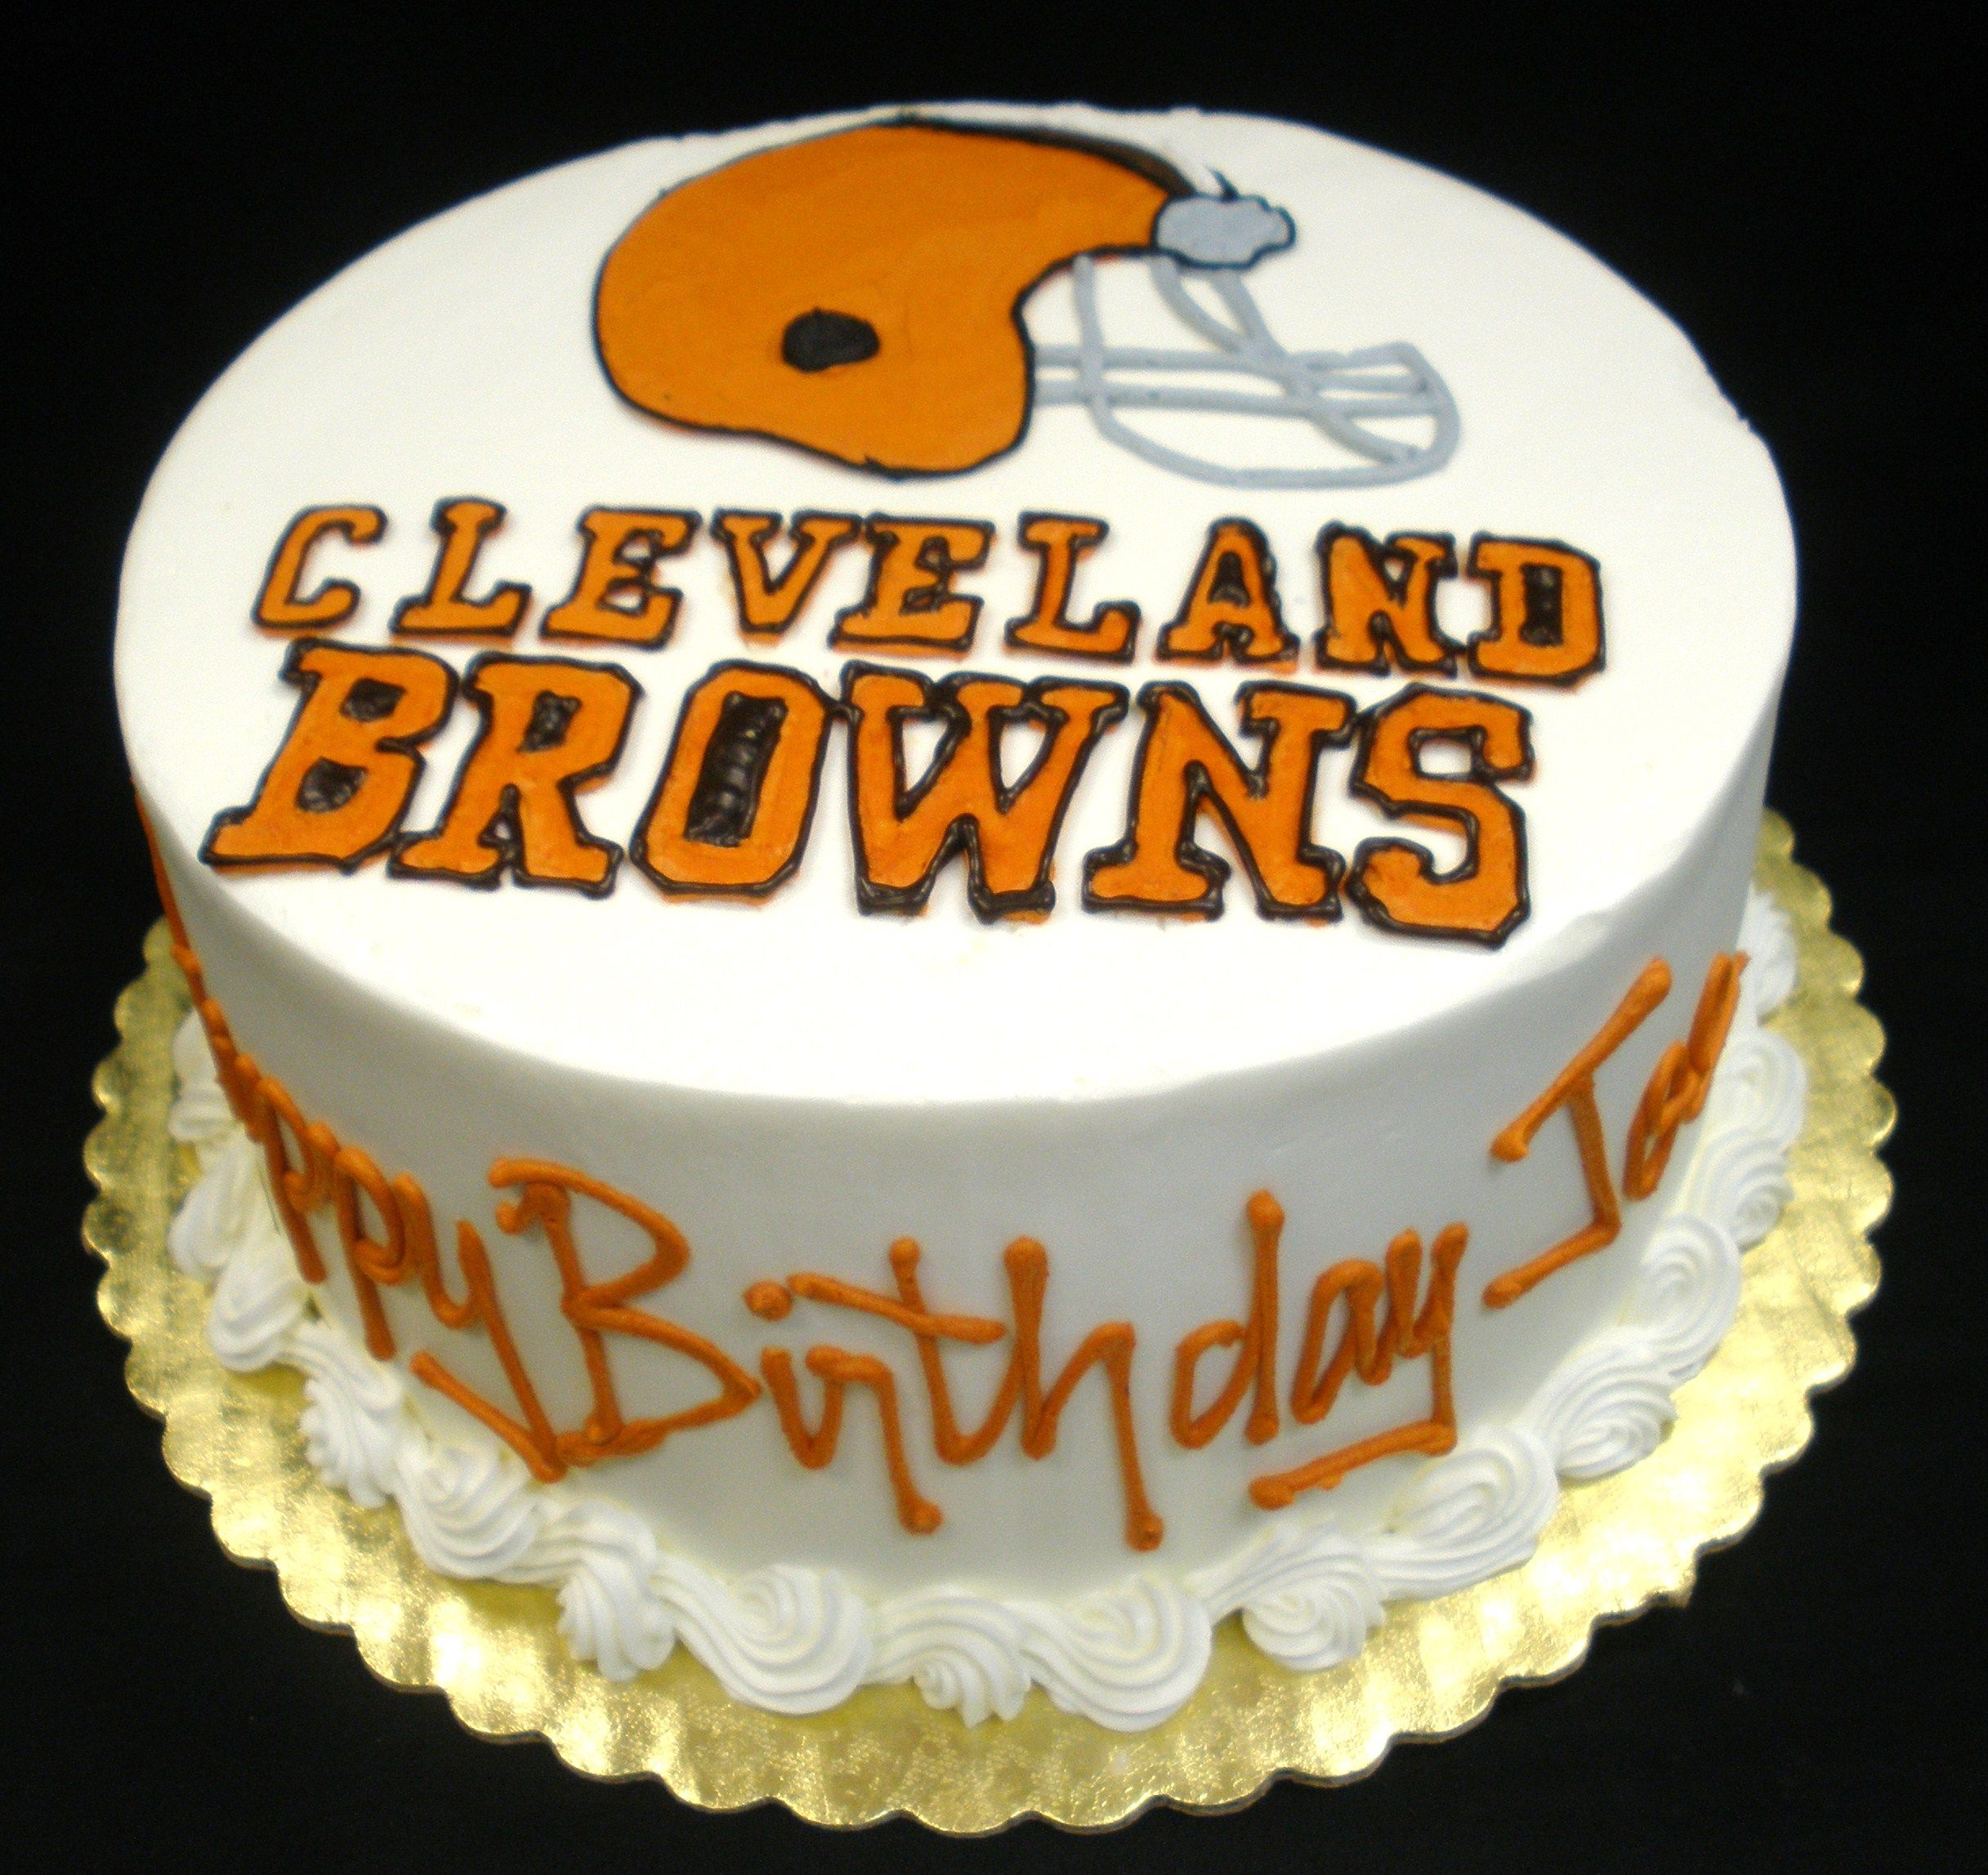 Cleveland Browns Birthday Cake For My Dad With Images Cake